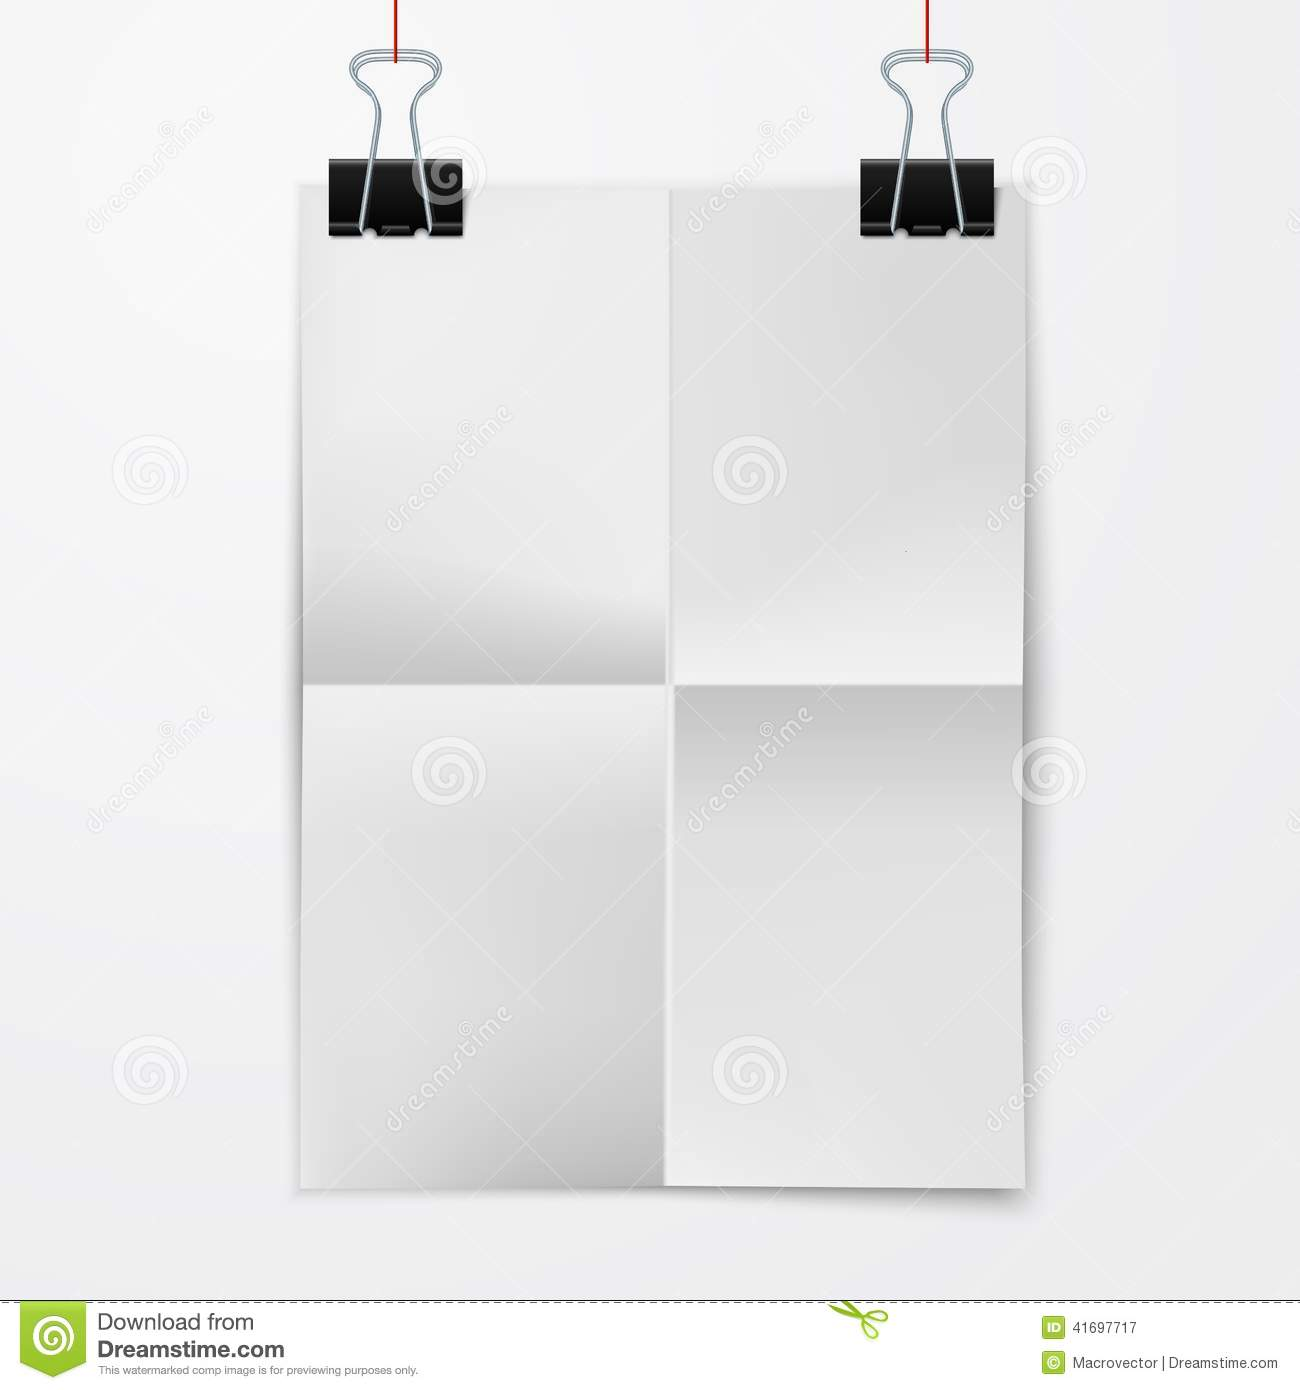 folded paper sheet with binder clip stock vector - illustration of